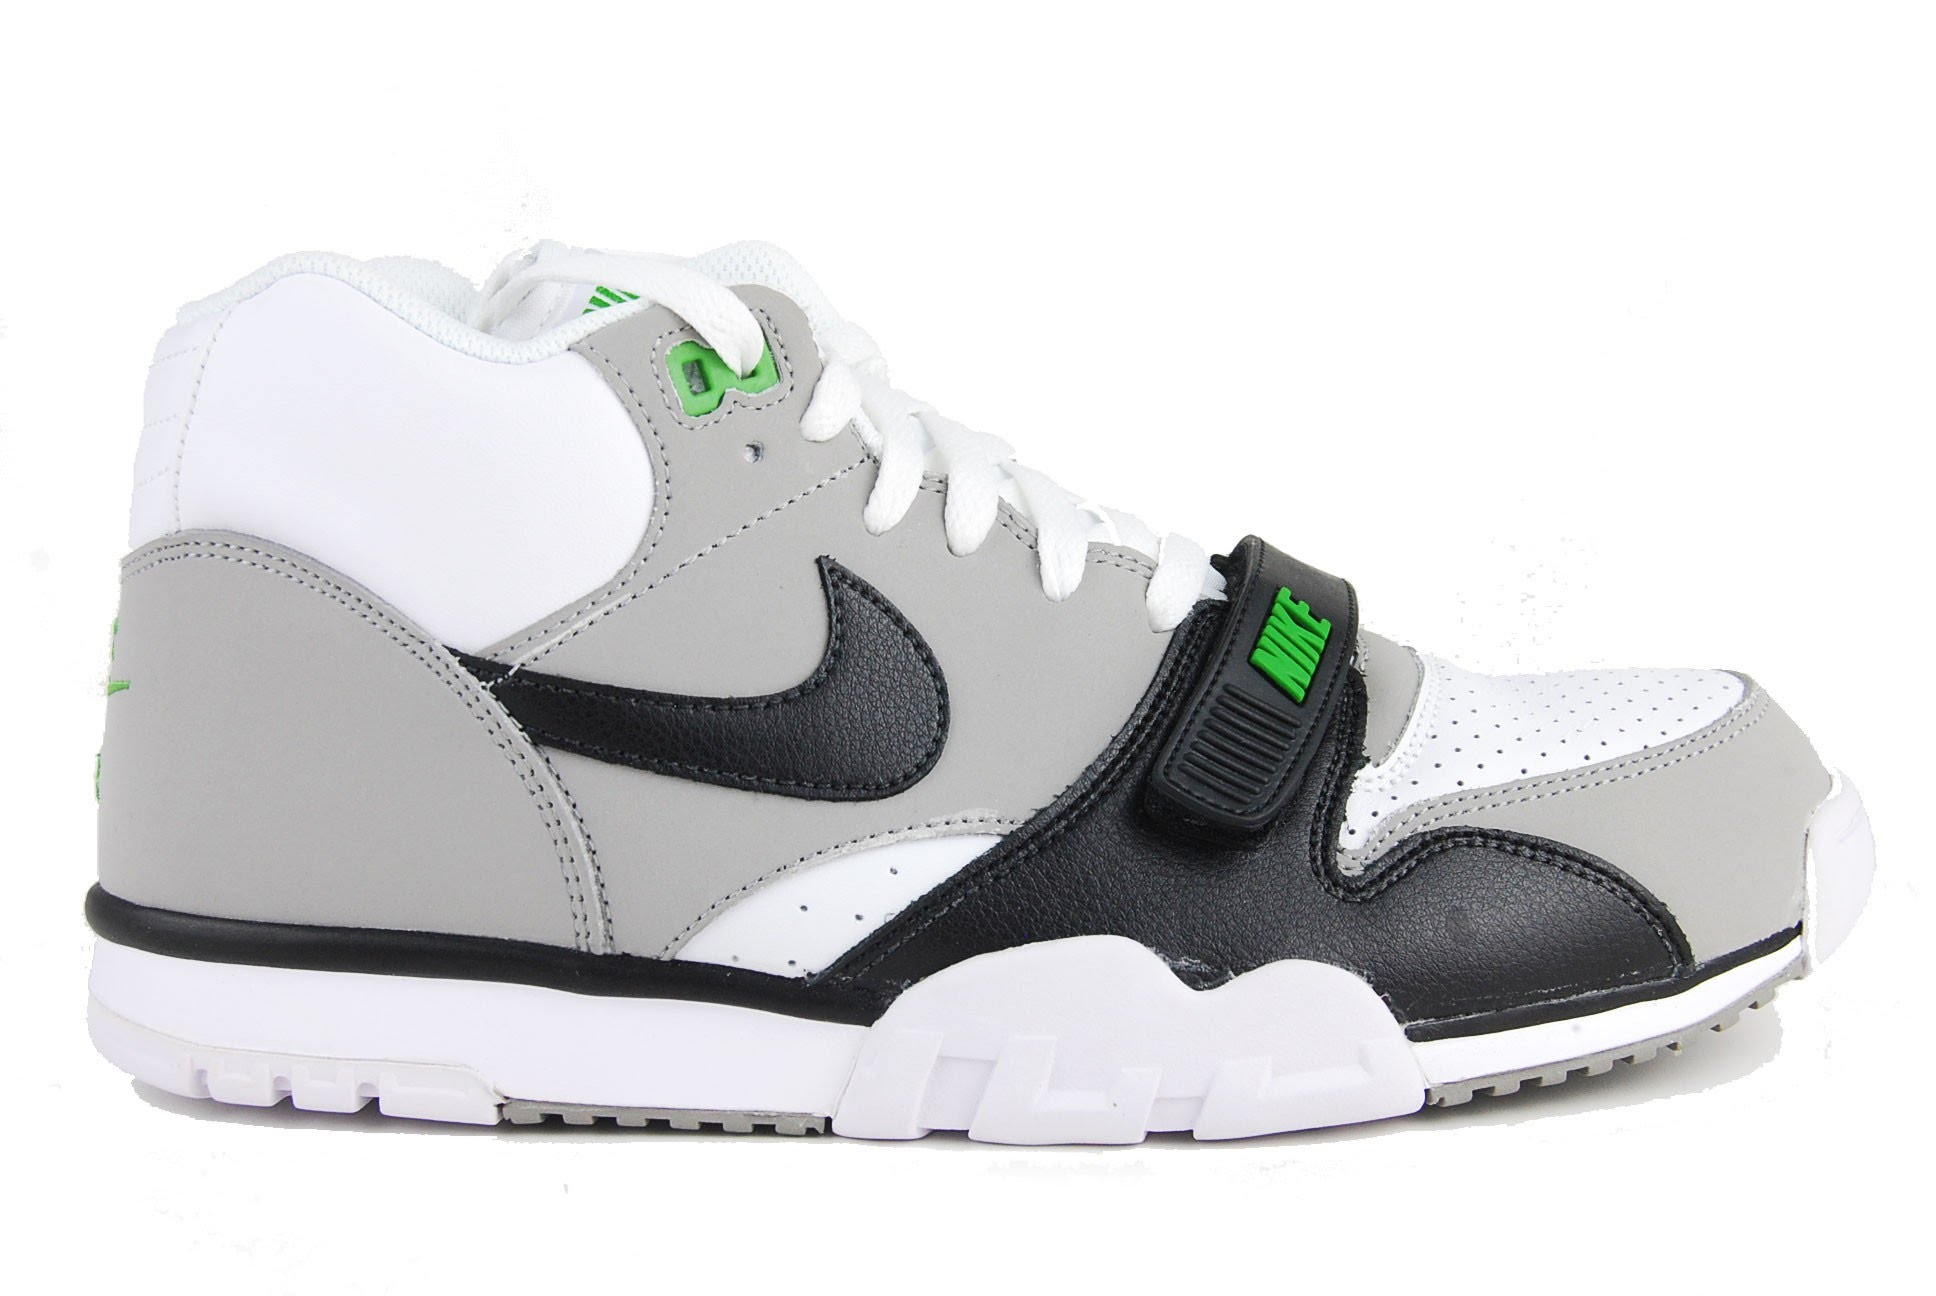 nikeairtrainer Catalog of all Nike Air Trainer 1 Retros wallyhopp